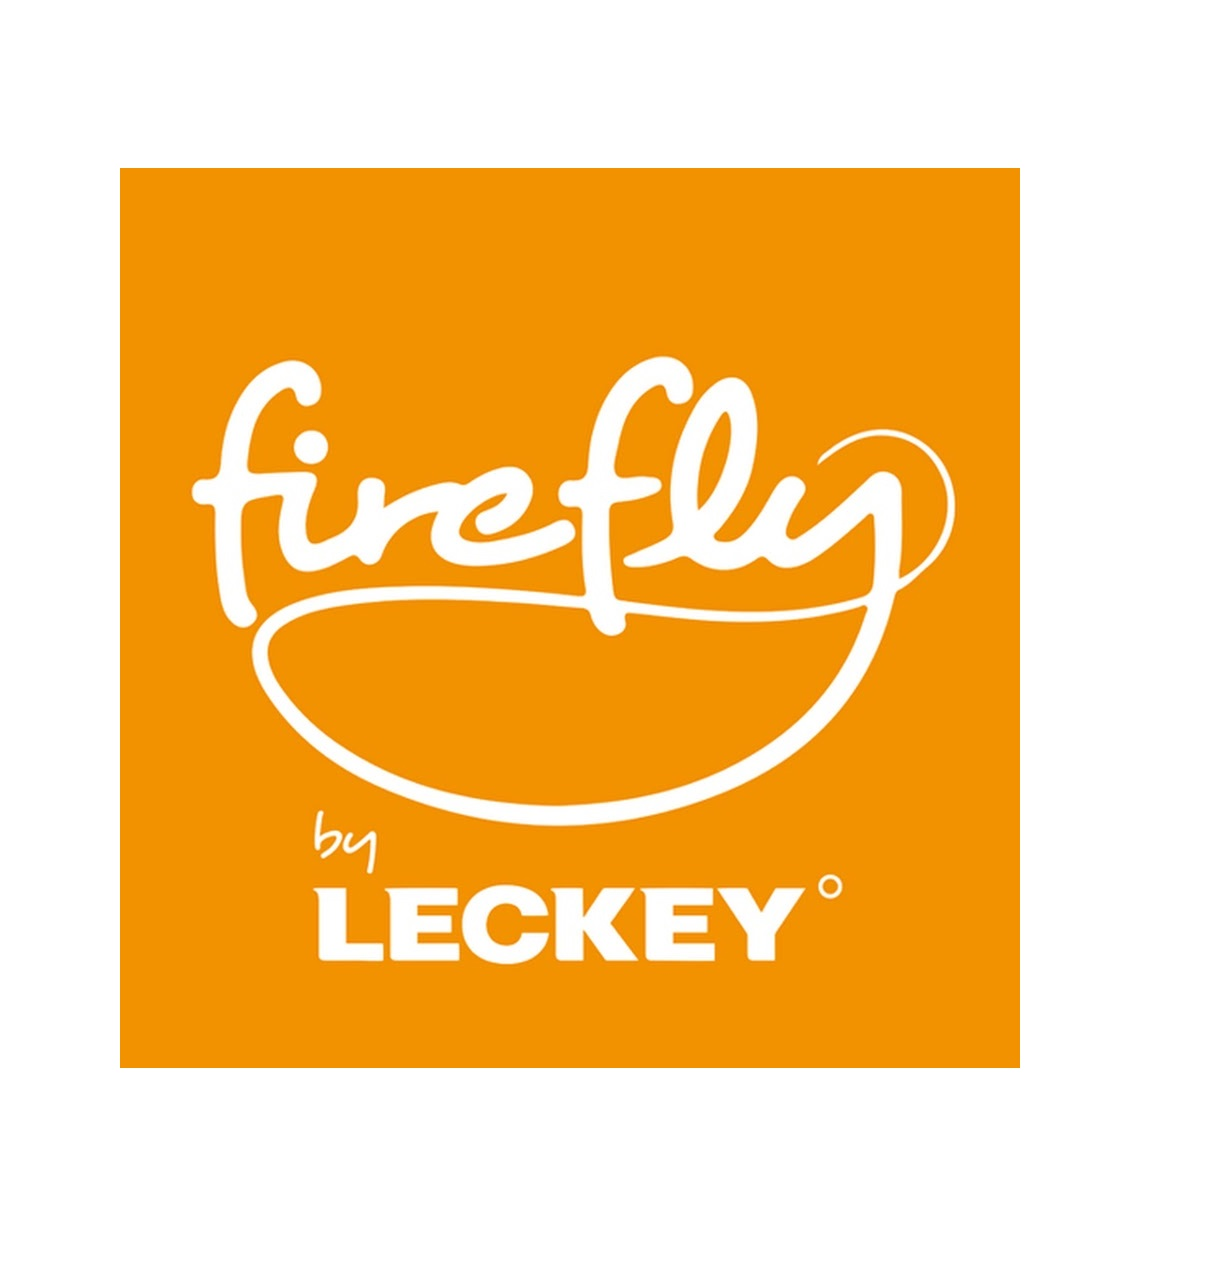 firefly by leckey.jpg